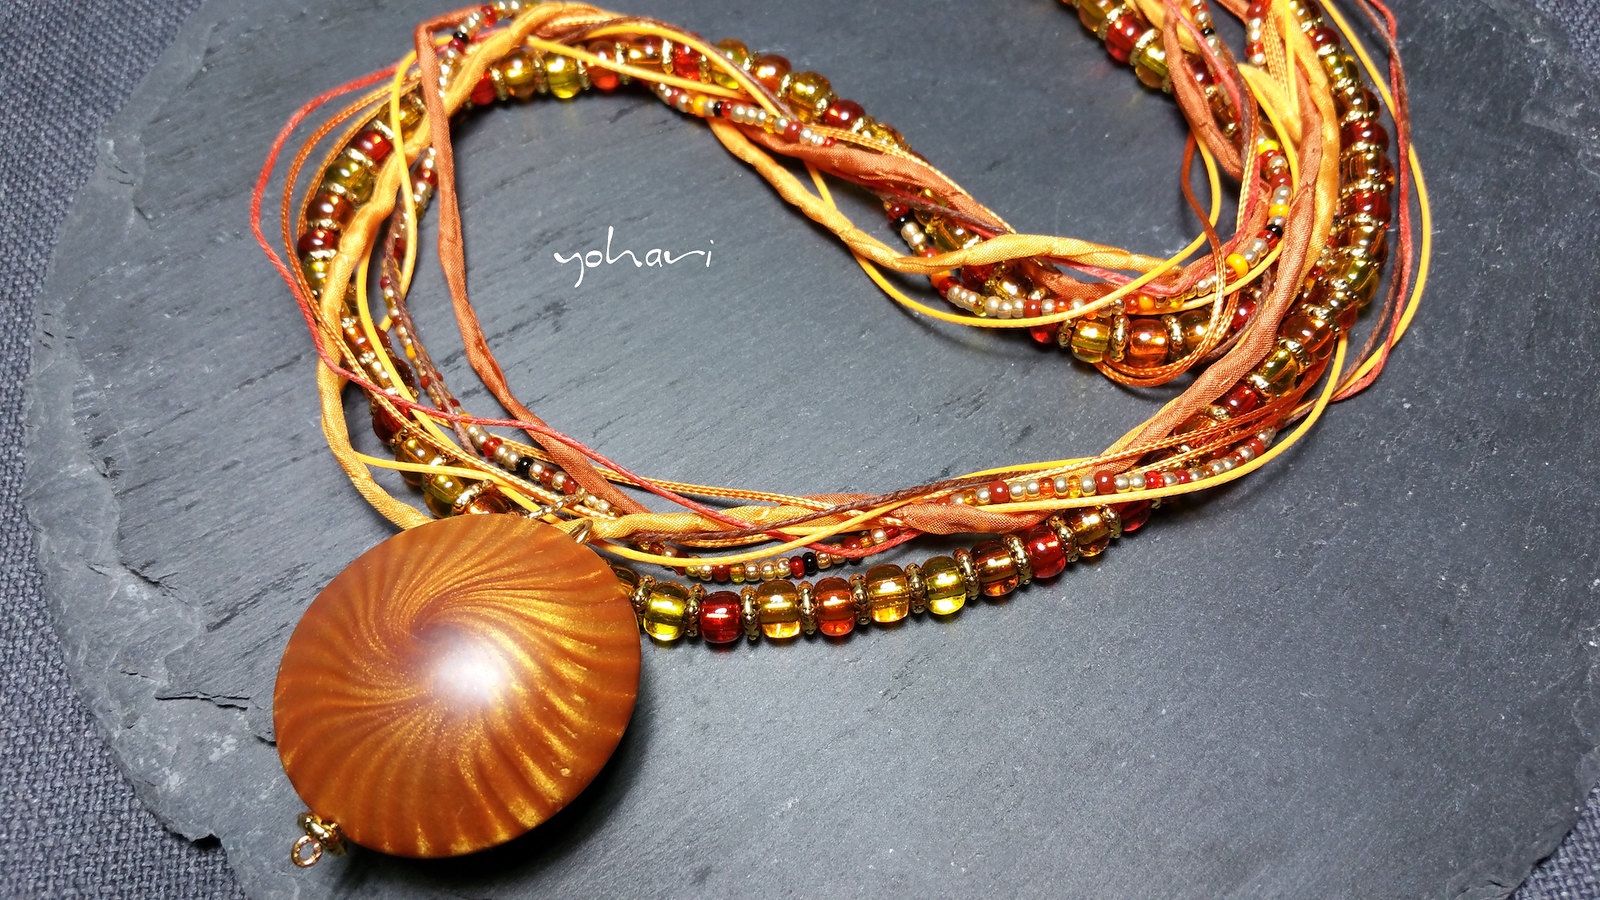 a golden necklace with polymer clay pendant